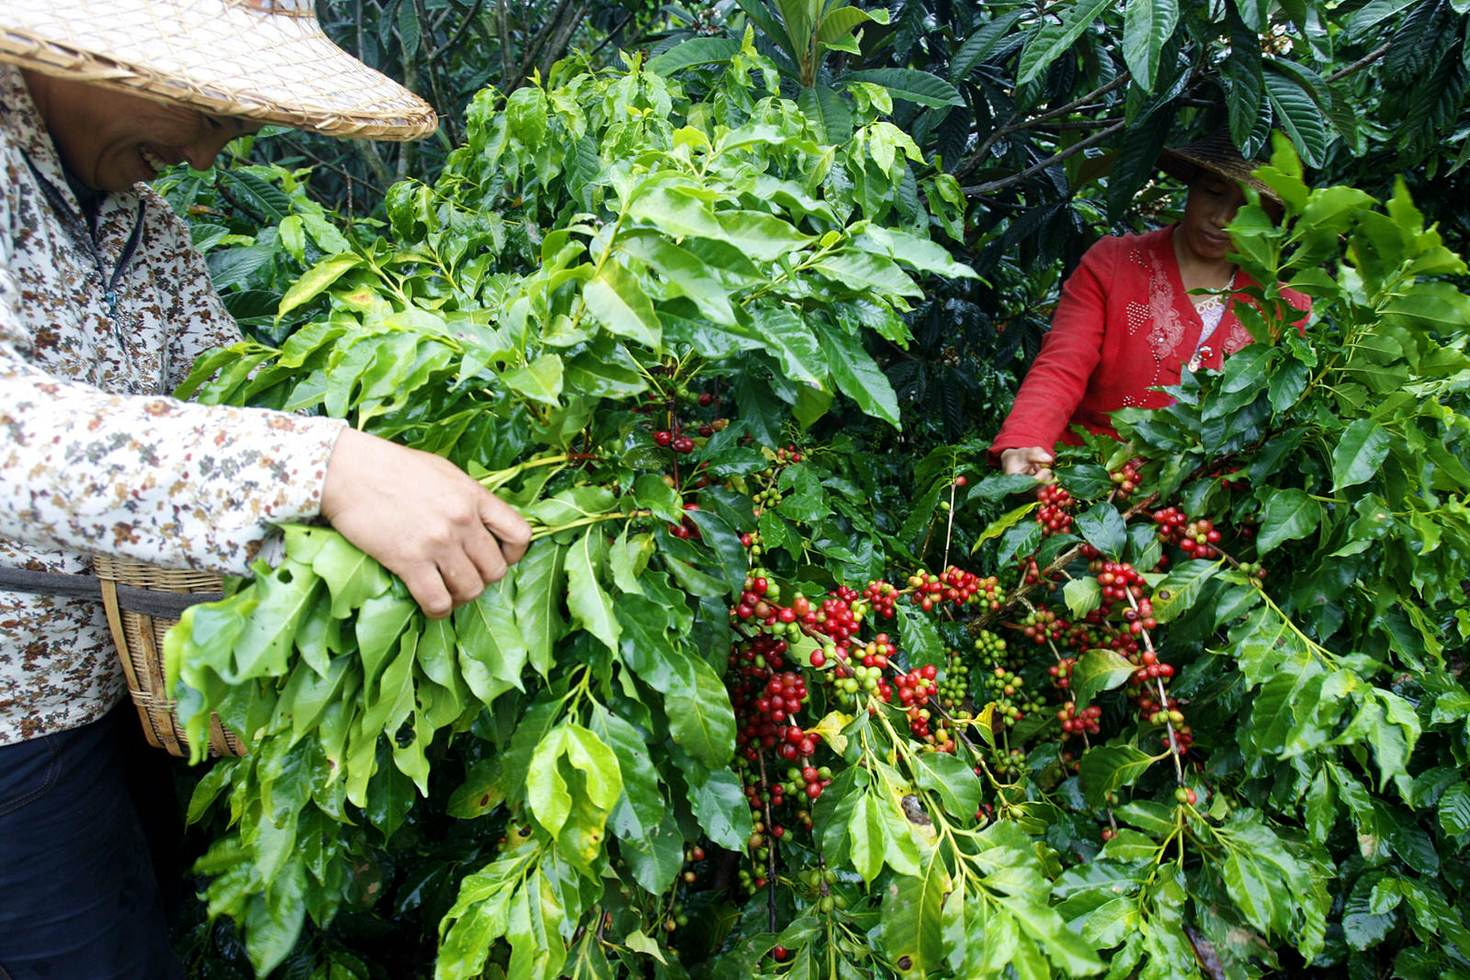 The coffee bean harvest in full swing in Yunnan, China © China Photos / Getty Images